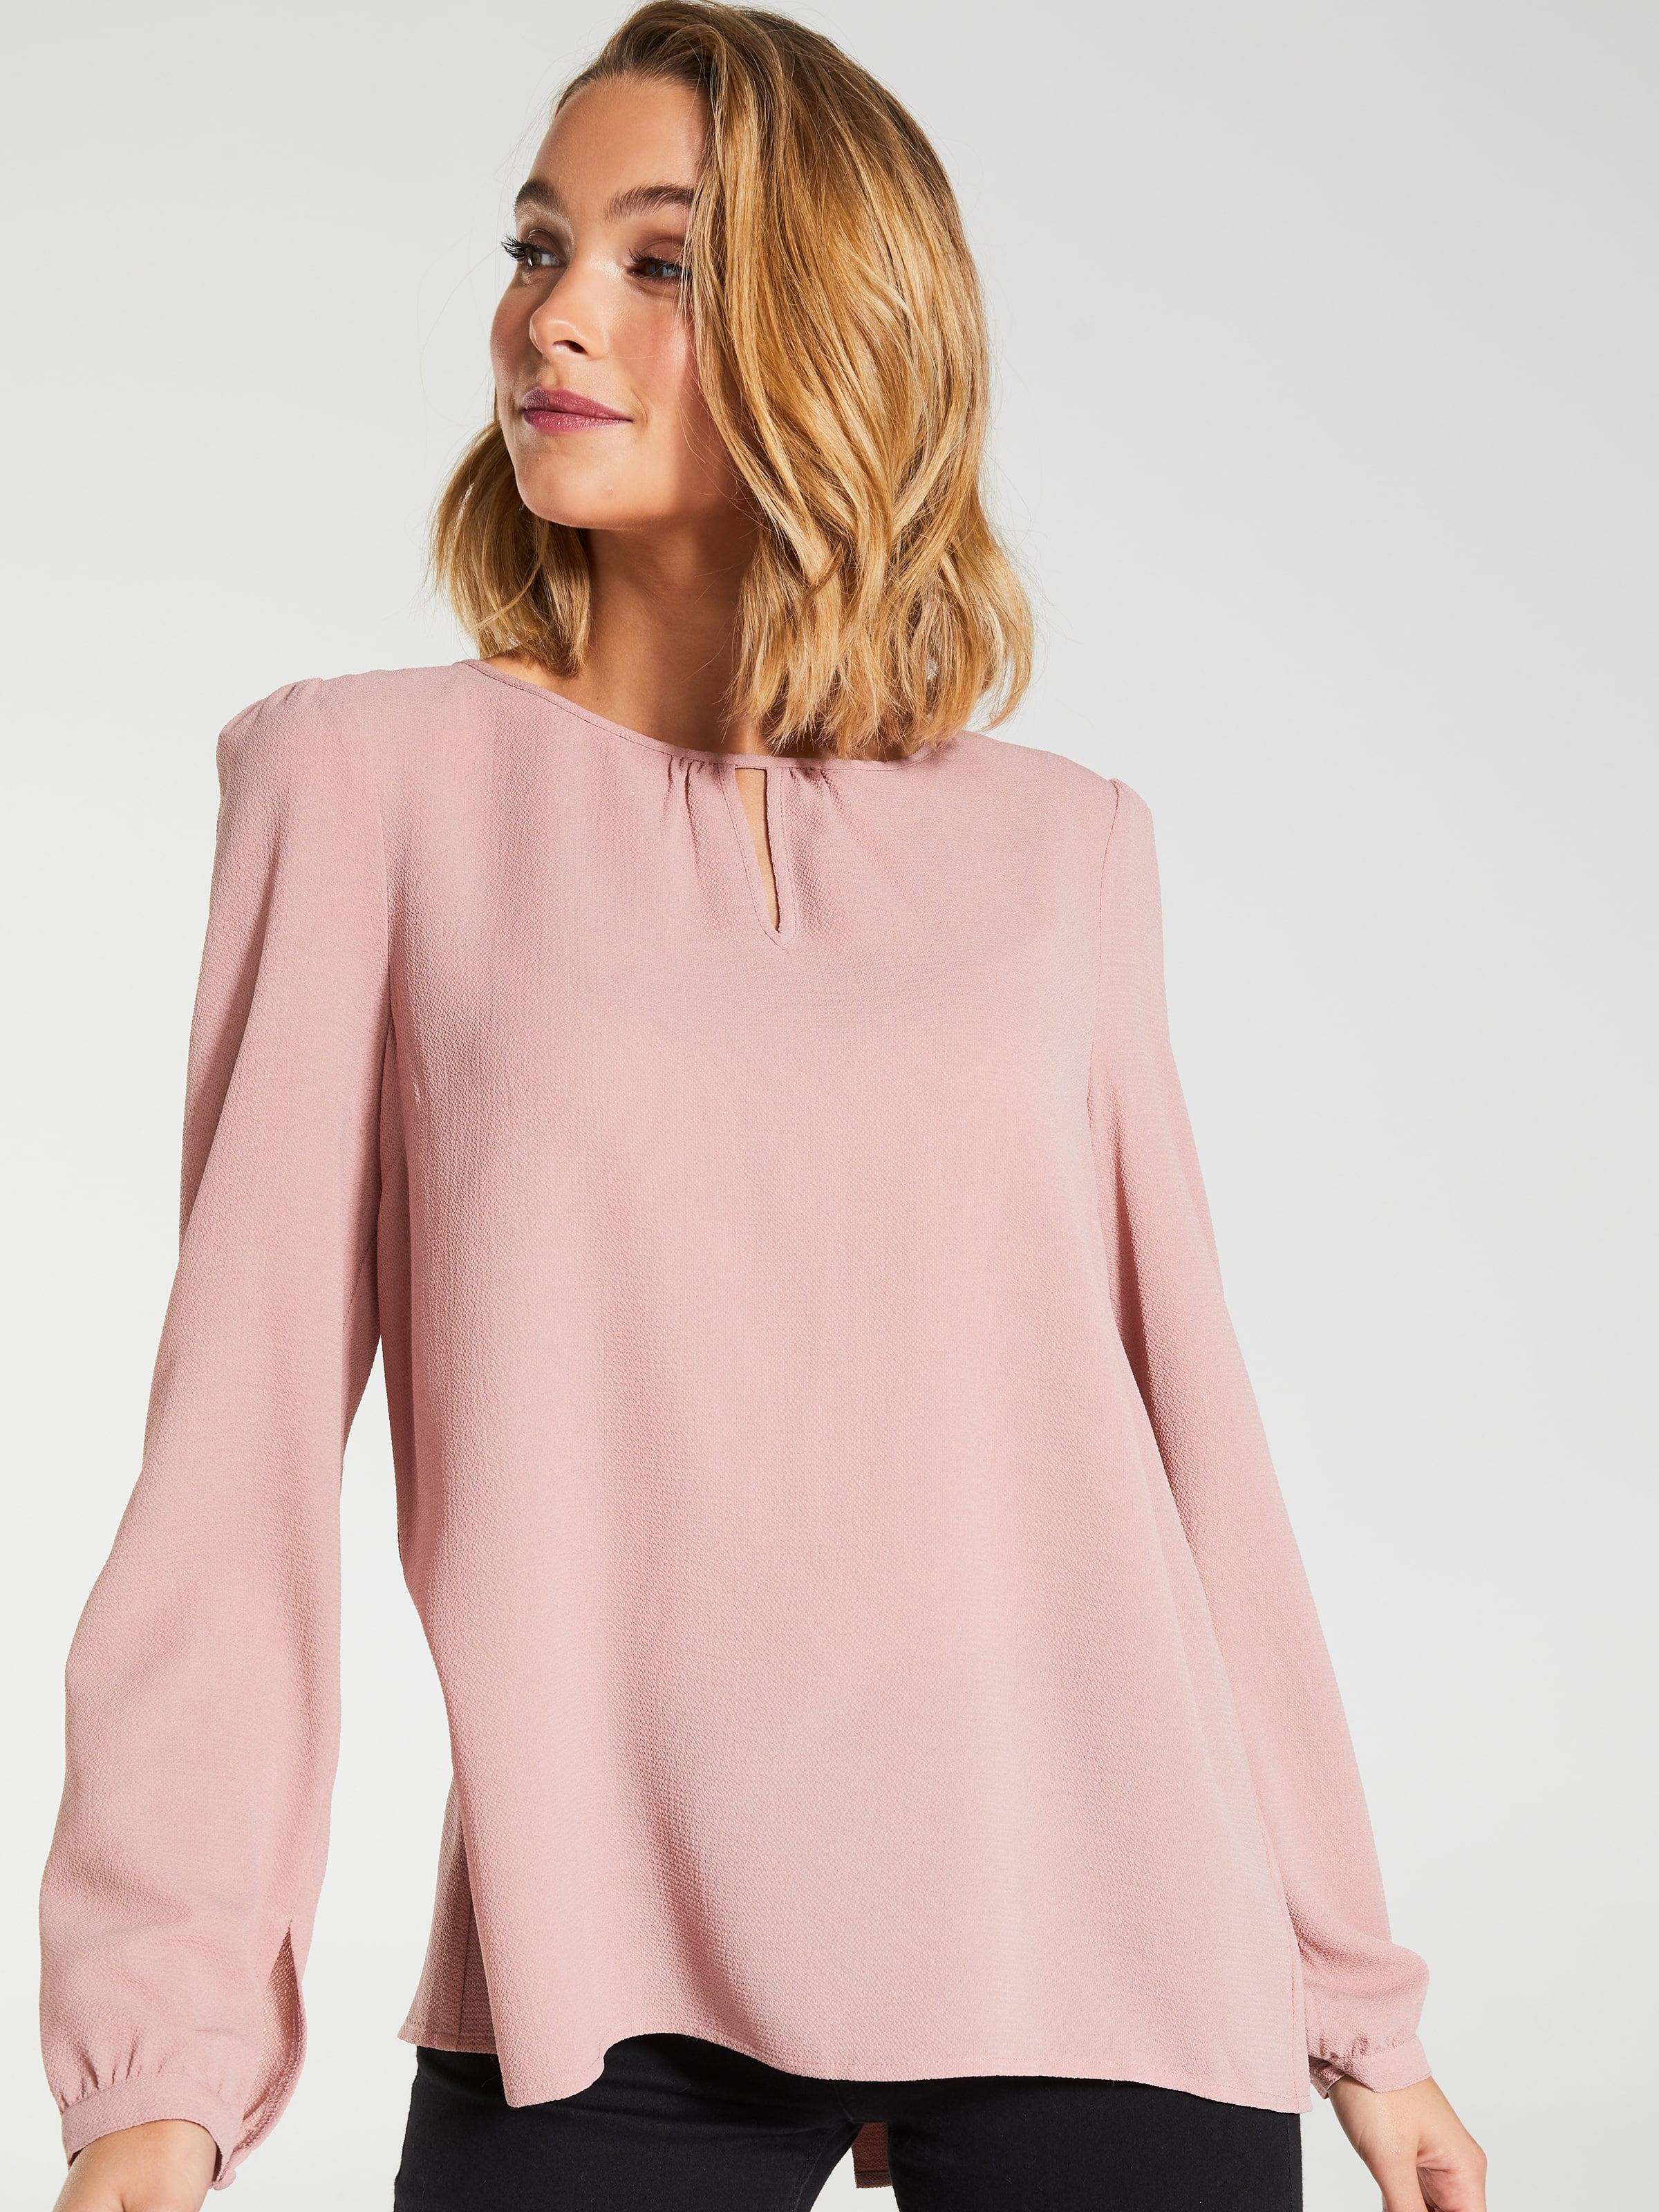 Ellery Long Sleeve Blouse